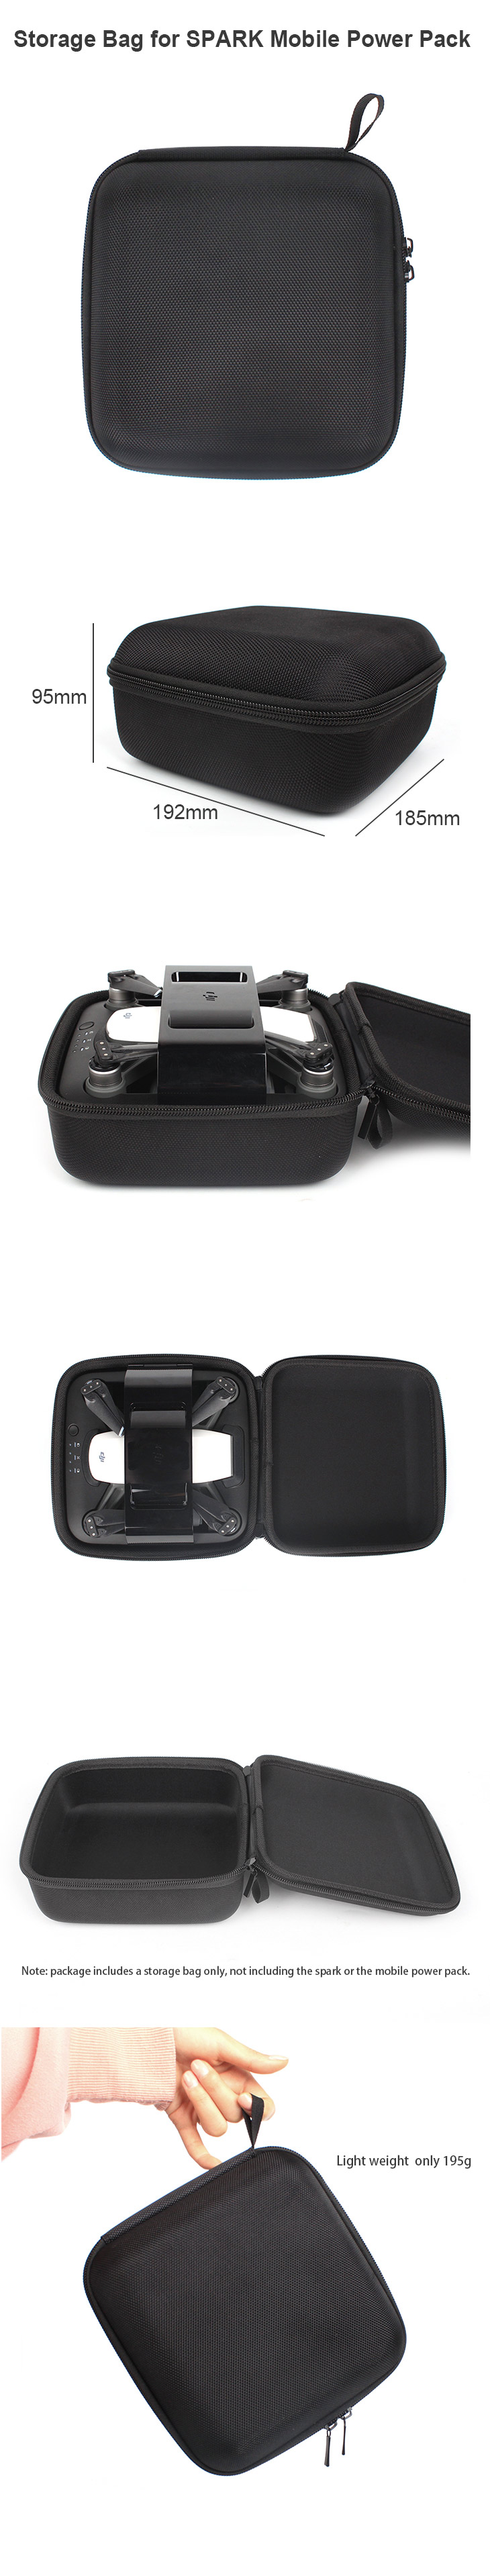 Portable Handheld Storage Bag Box Case for DJI SPARK Mobile Power Pack for DJI SPARK Camera Drone